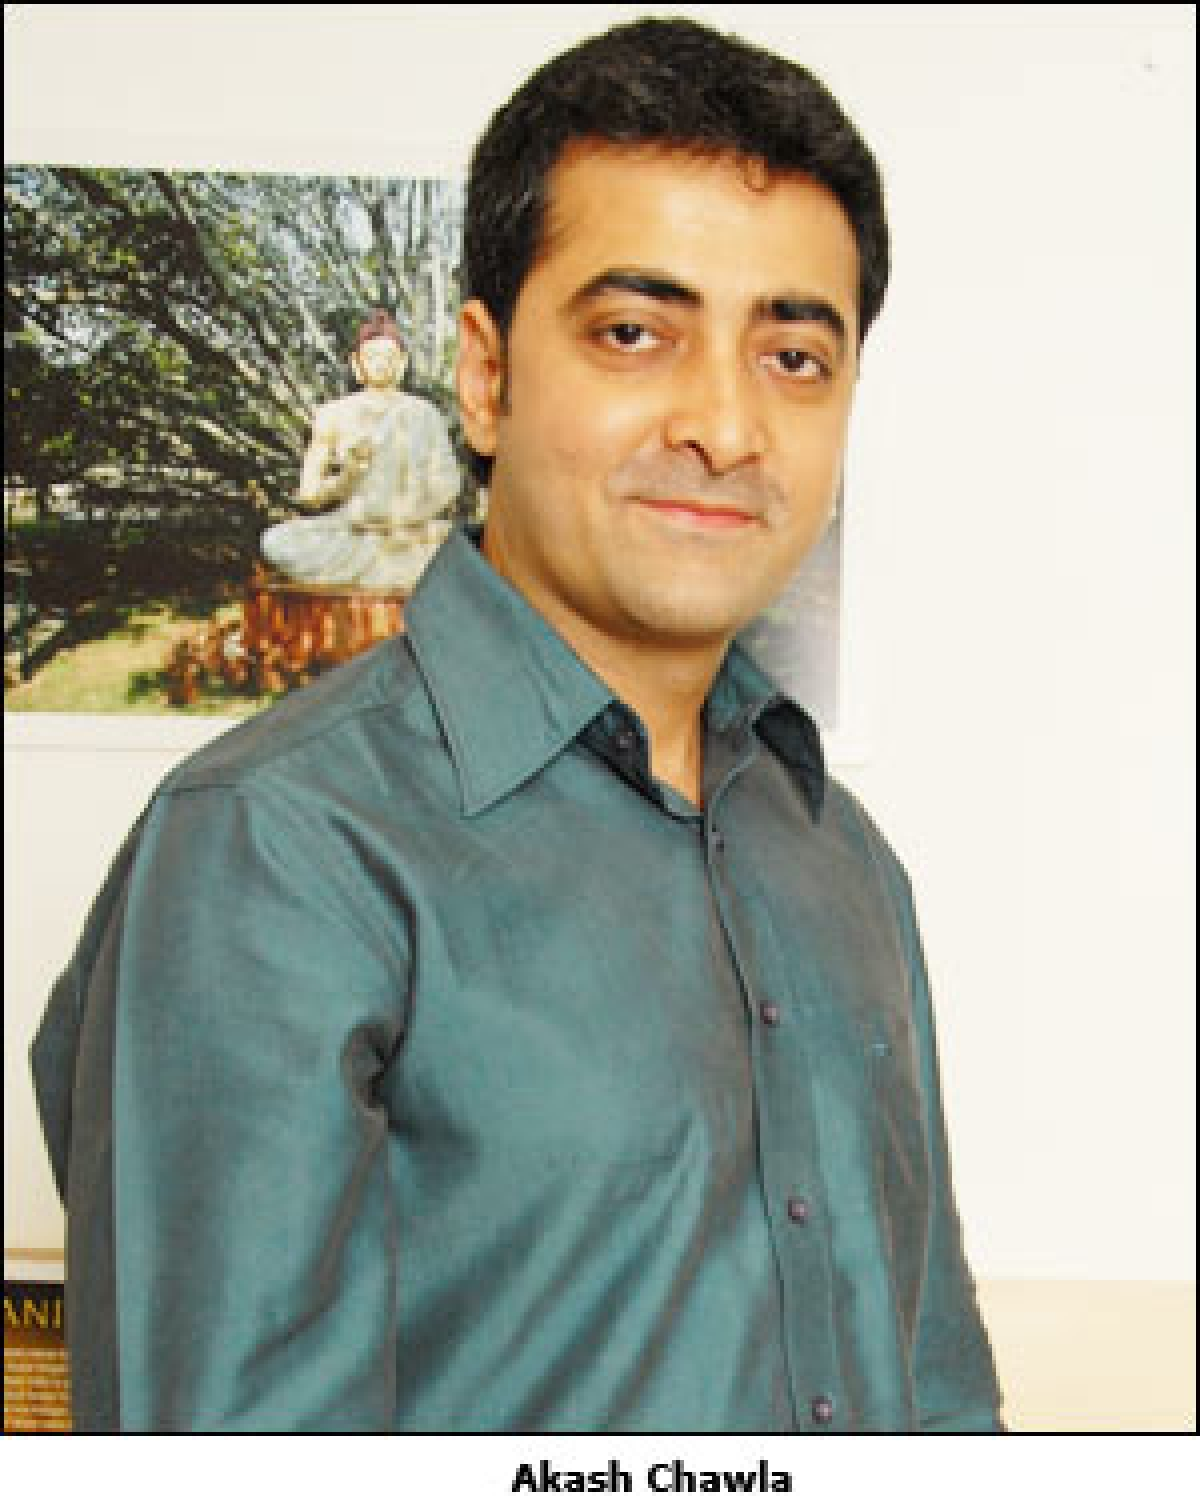 Akash Chawla is business head of Essel Vision Productions